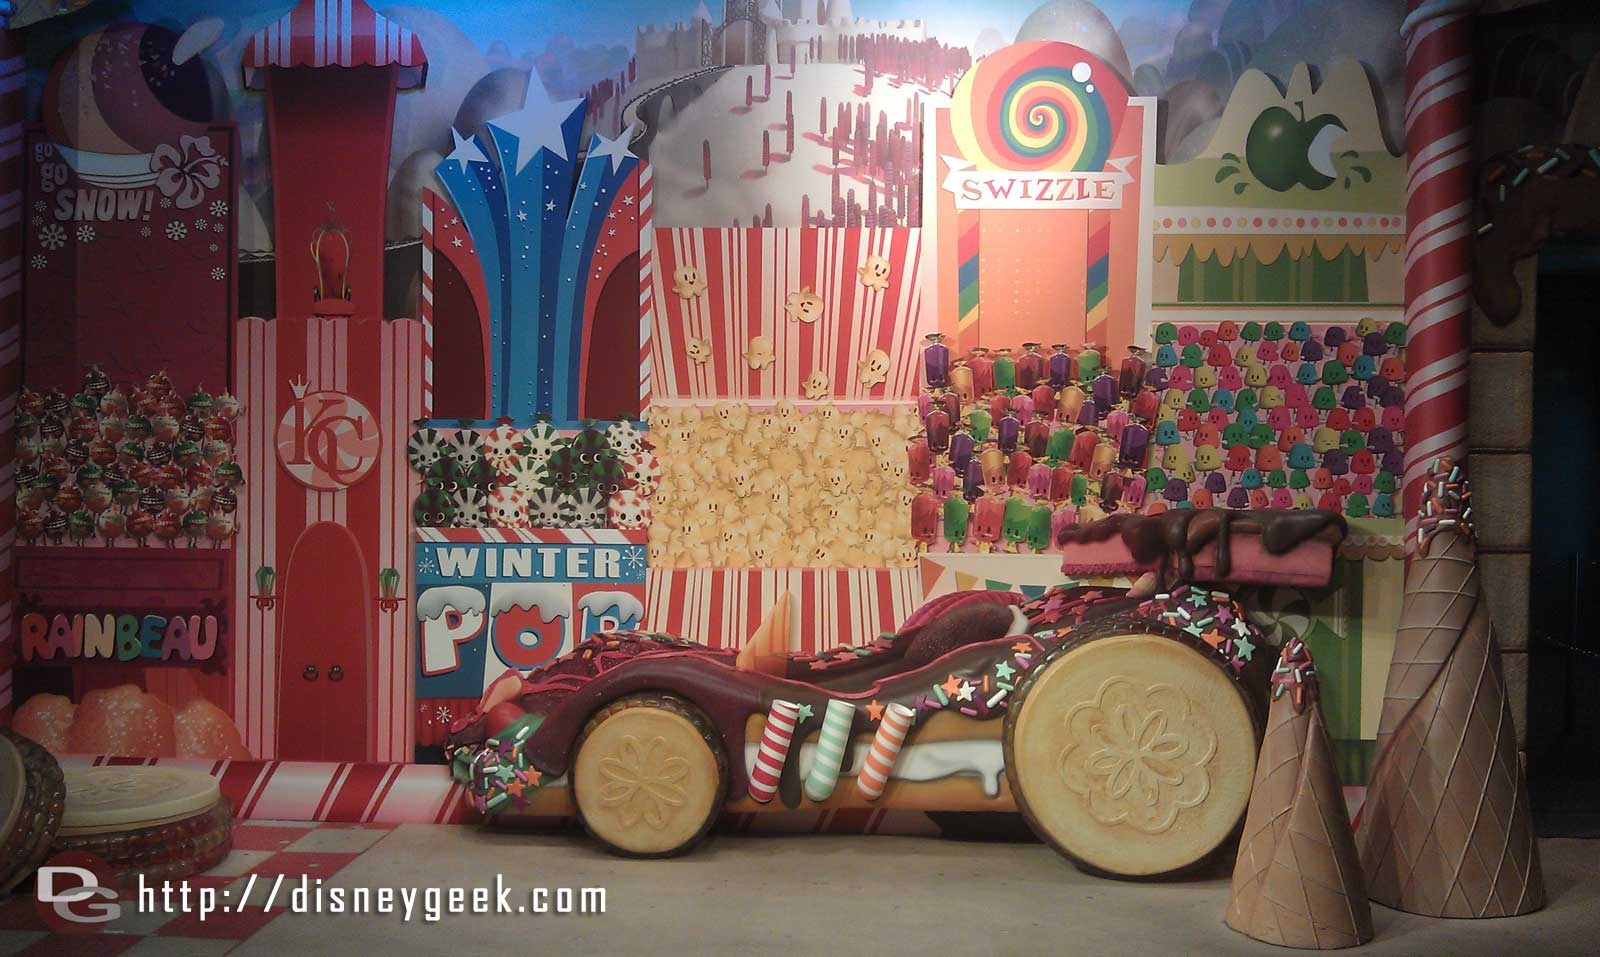 The Wreck-It Ralph photo op, nice and quiet since it doed not open till 10:30